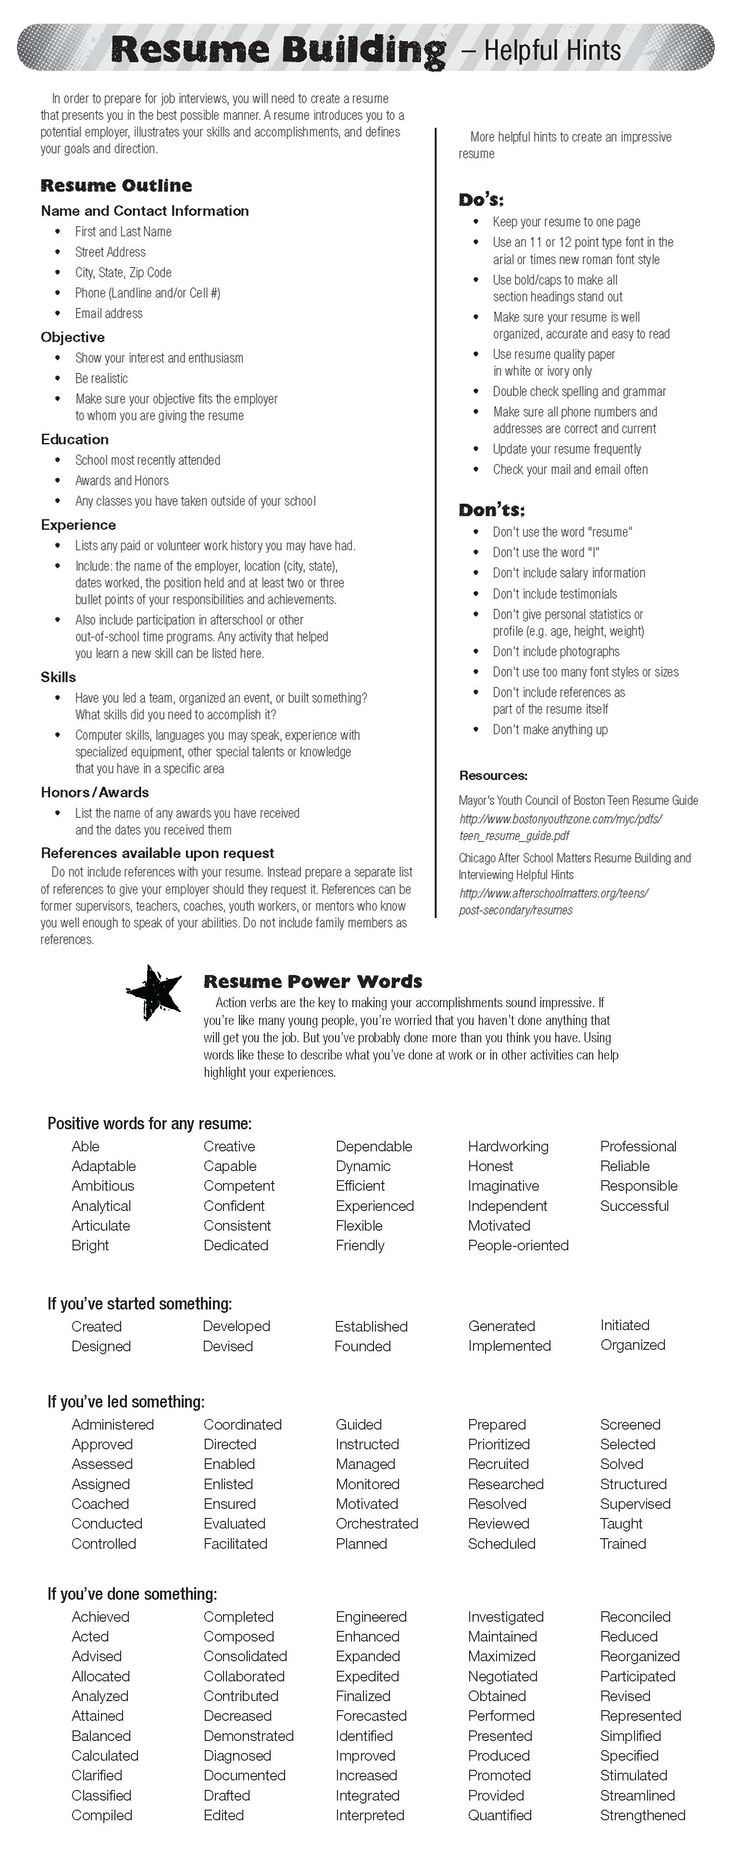 Opposenewapstandardsus  Ravishing  Ideas About Resume On Pinterest  Cv Format Resume Cv And  With Inspiring  Ideas About Resume On Pinterest  Cv Format Resume Cv And Resume Templates With Divine Bartender Resume No Experience Also Inexperienced Resume In Addition Optometry Resume And Tips For Writing Resume As Well As Logistics Resume Sample Additionally How To Write Professional Resume From Pinterestcom With Opposenewapstandardsus  Inspiring  Ideas About Resume On Pinterest  Cv Format Resume Cv And  With Divine  Ideas About Resume On Pinterest  Cv Format Resume Cv And Resume Templates And Ravishing Bartender Resume No Experience Also Inexperienced Resume In Addition Optometry Resume From Pinterestcom